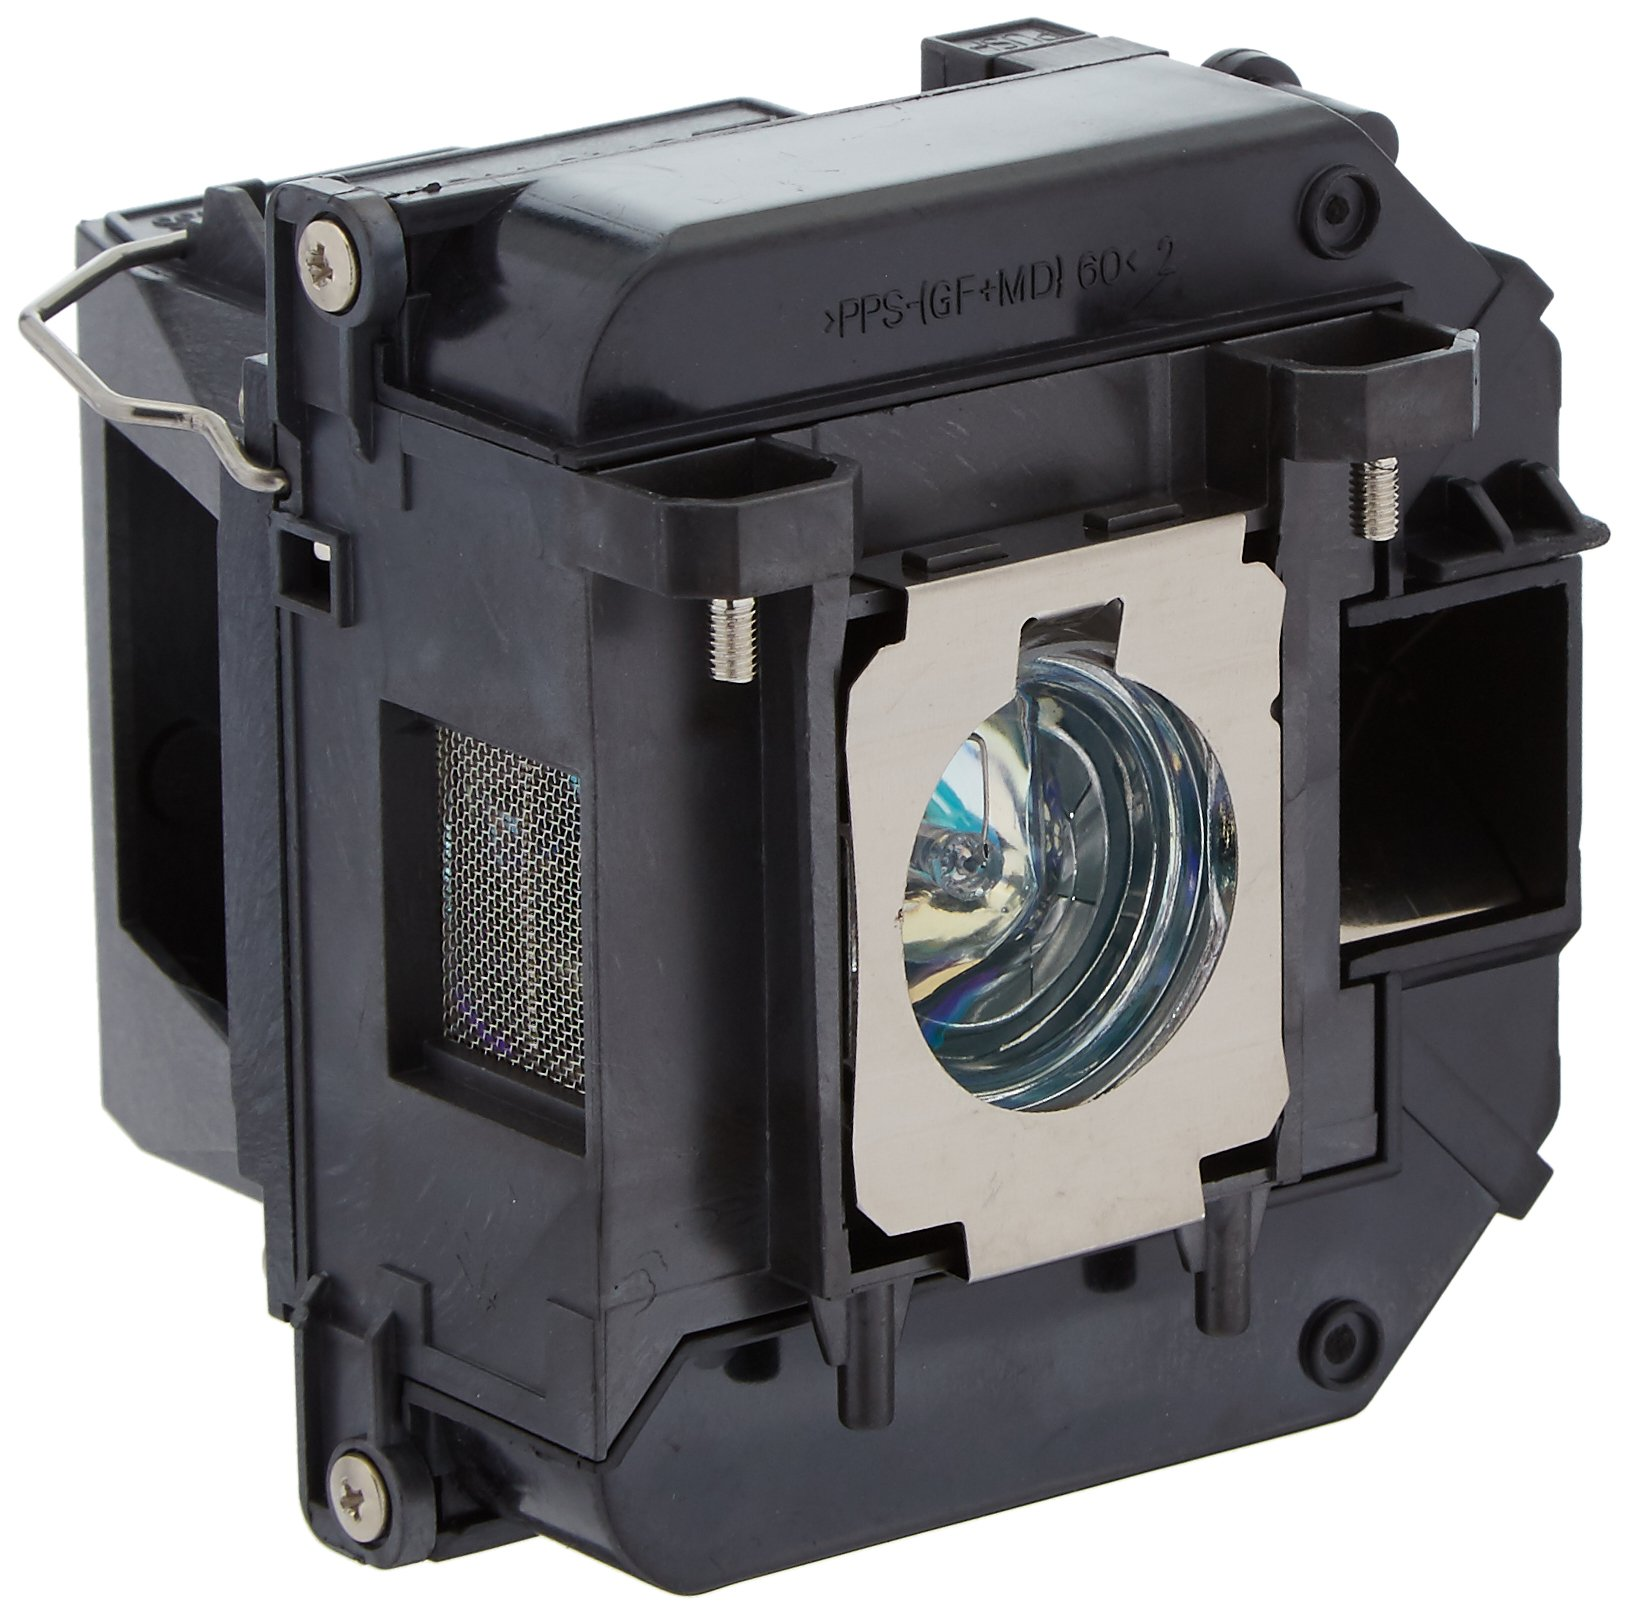 Epson V13H010L60 ELPLP60 Replacement Lamp. REPLACEMENT LAMP POWERLITE 92 93 95 96W 905 PJ-LMP. 200 W Projector Lamp - UHE